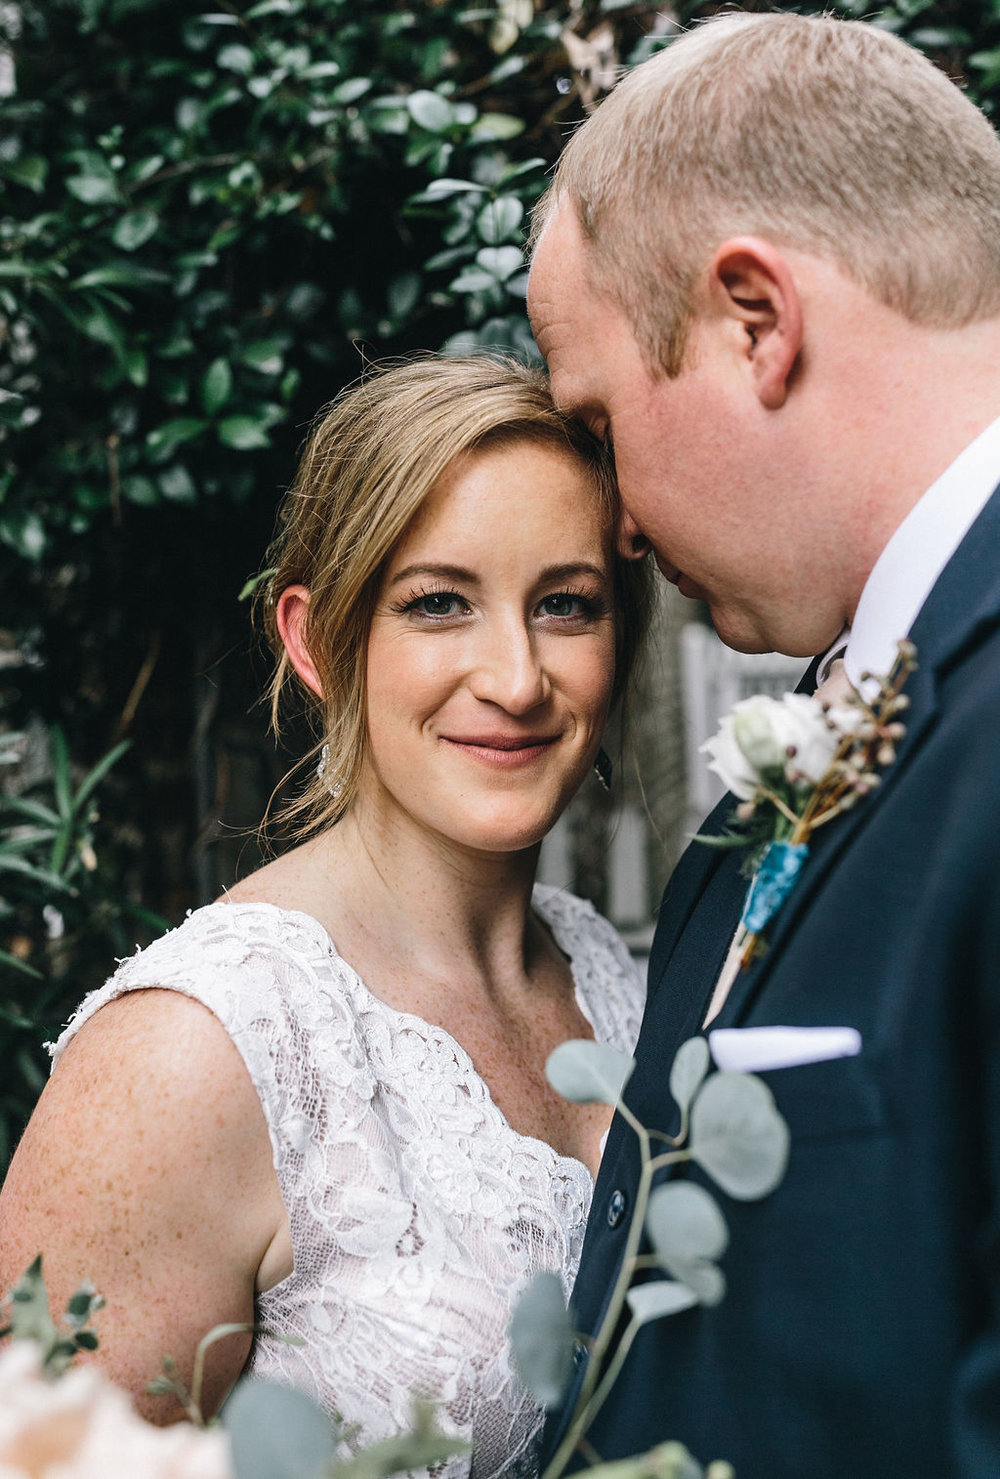 ivory_and_beau_savannah_bridal_shop_ivory_and_beau_couple_regan_and_brian_mackensey_alexander_photography_charles_h_morris_center_wedding_savannah_wedding_planner_savannah_florist_15.jpg